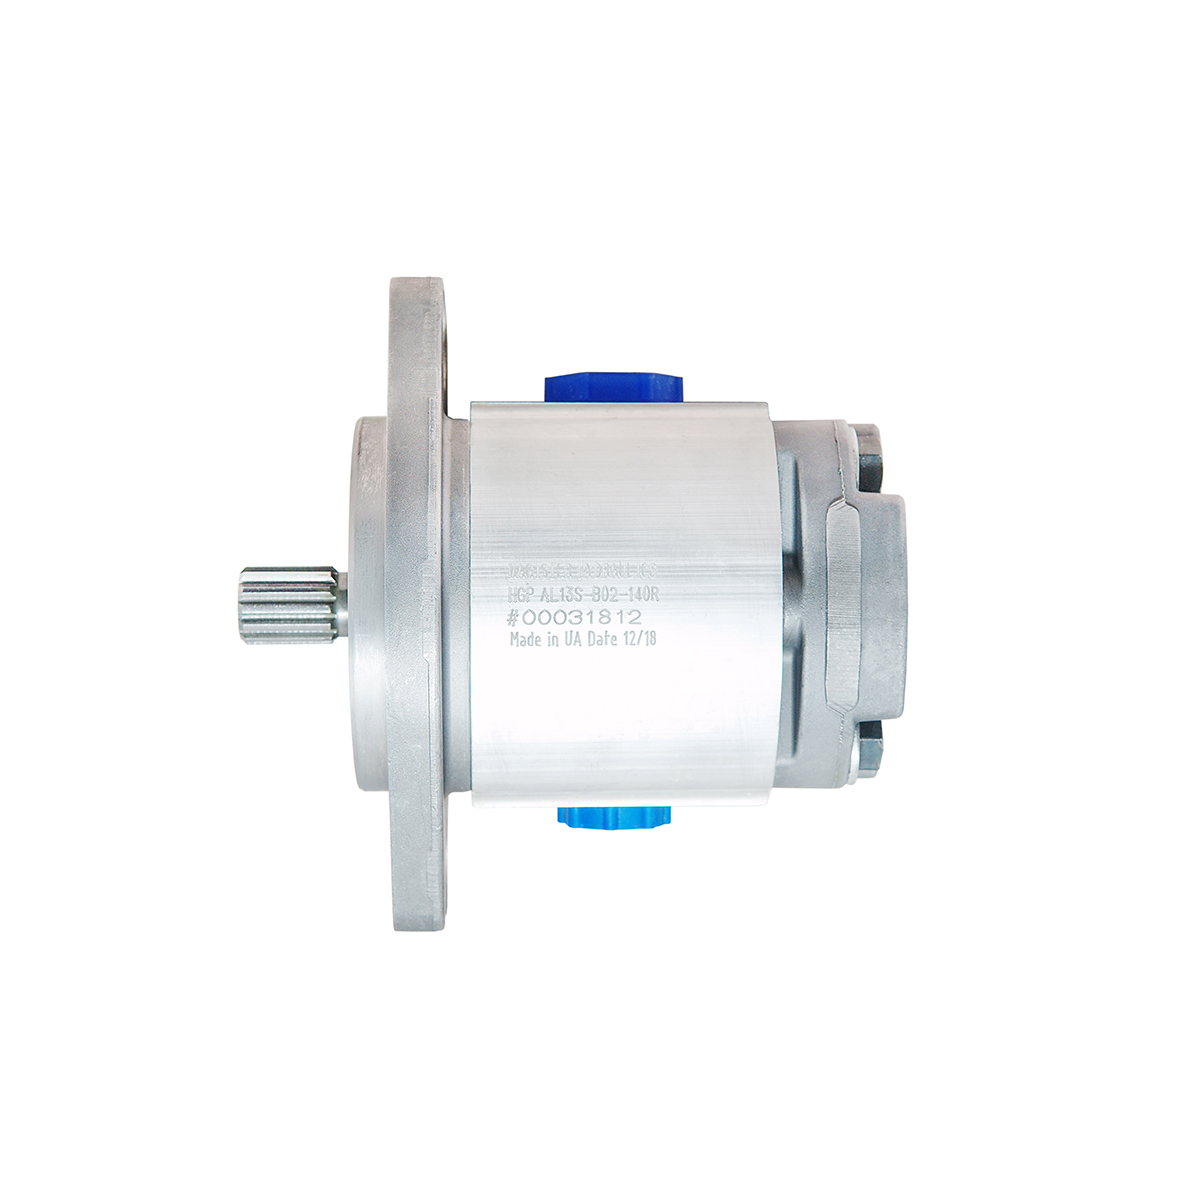 0.50 CID hydraulic gear pump, 9 tooth spline shaft clockwise gear pump | Magister Hydraulics